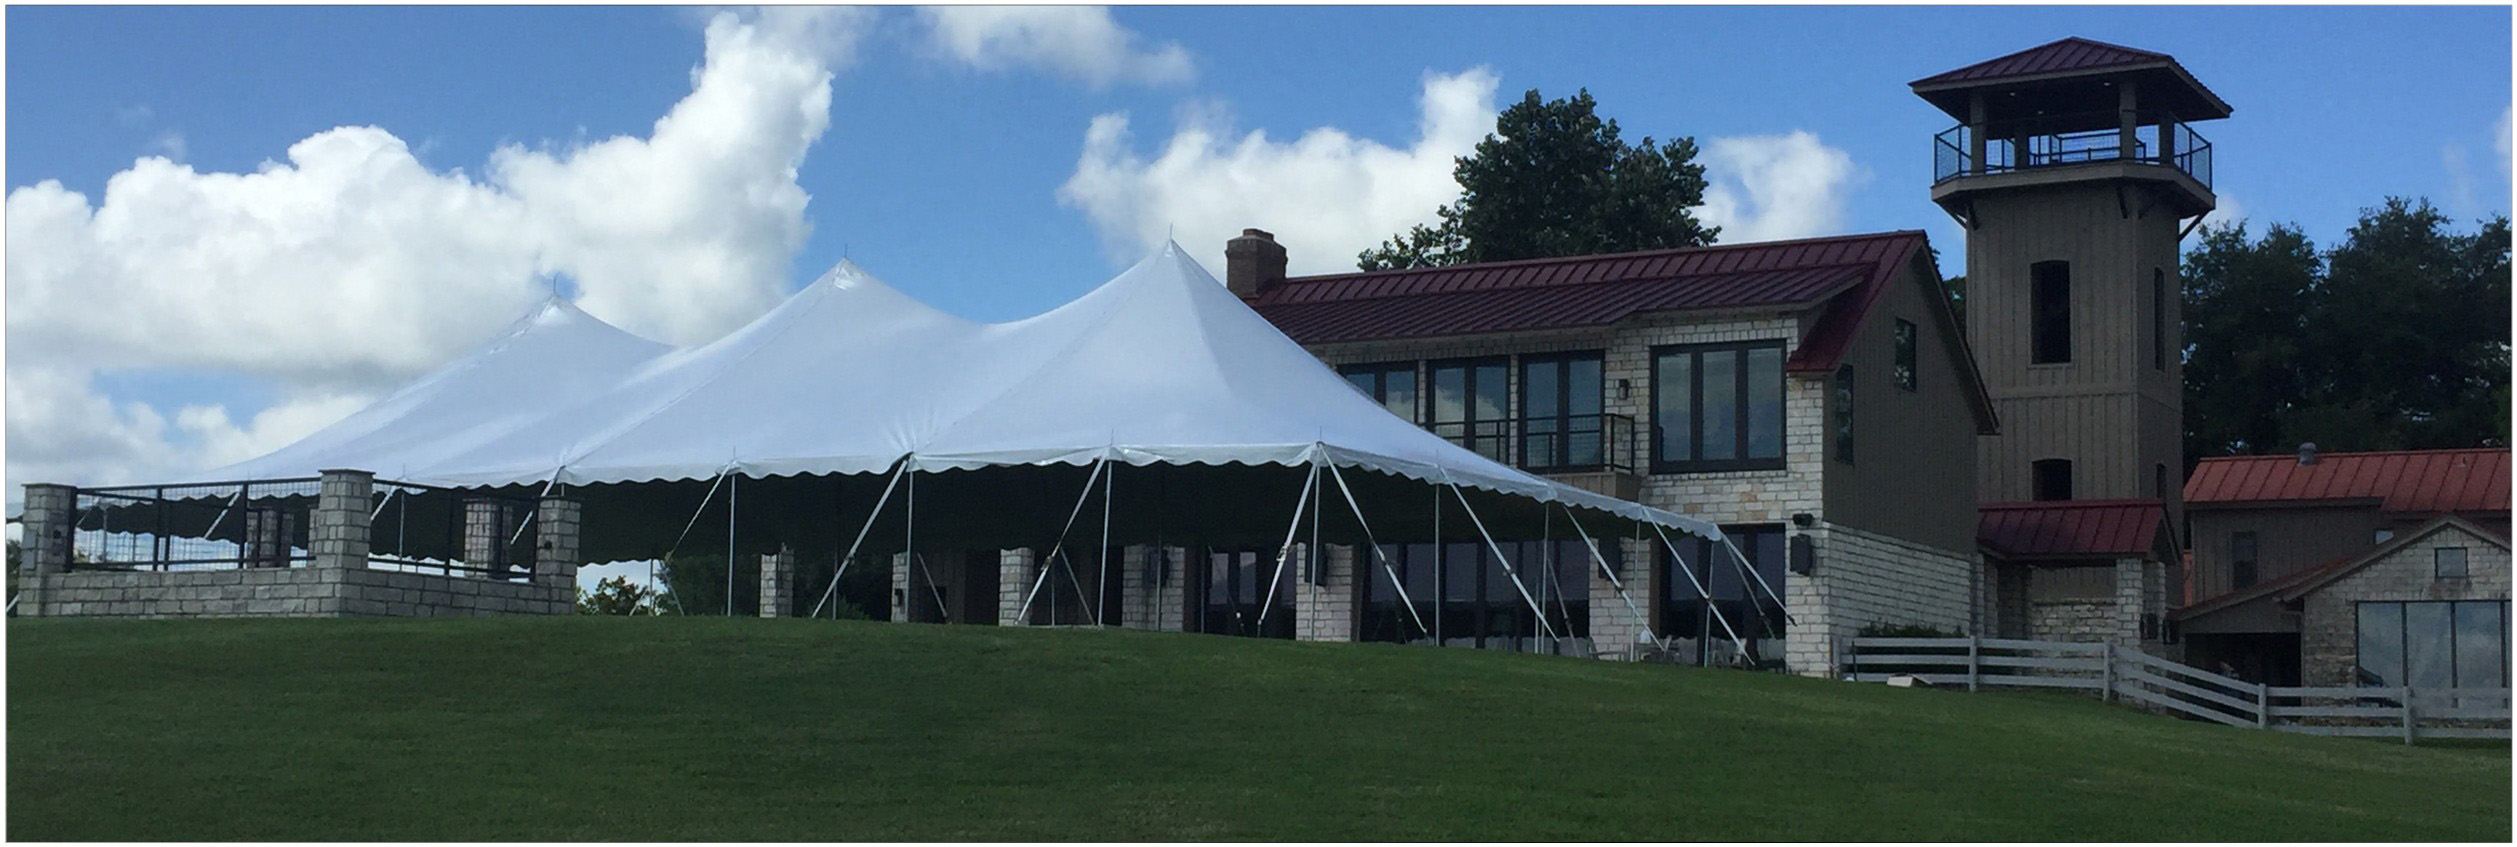 high peaked wedding tents